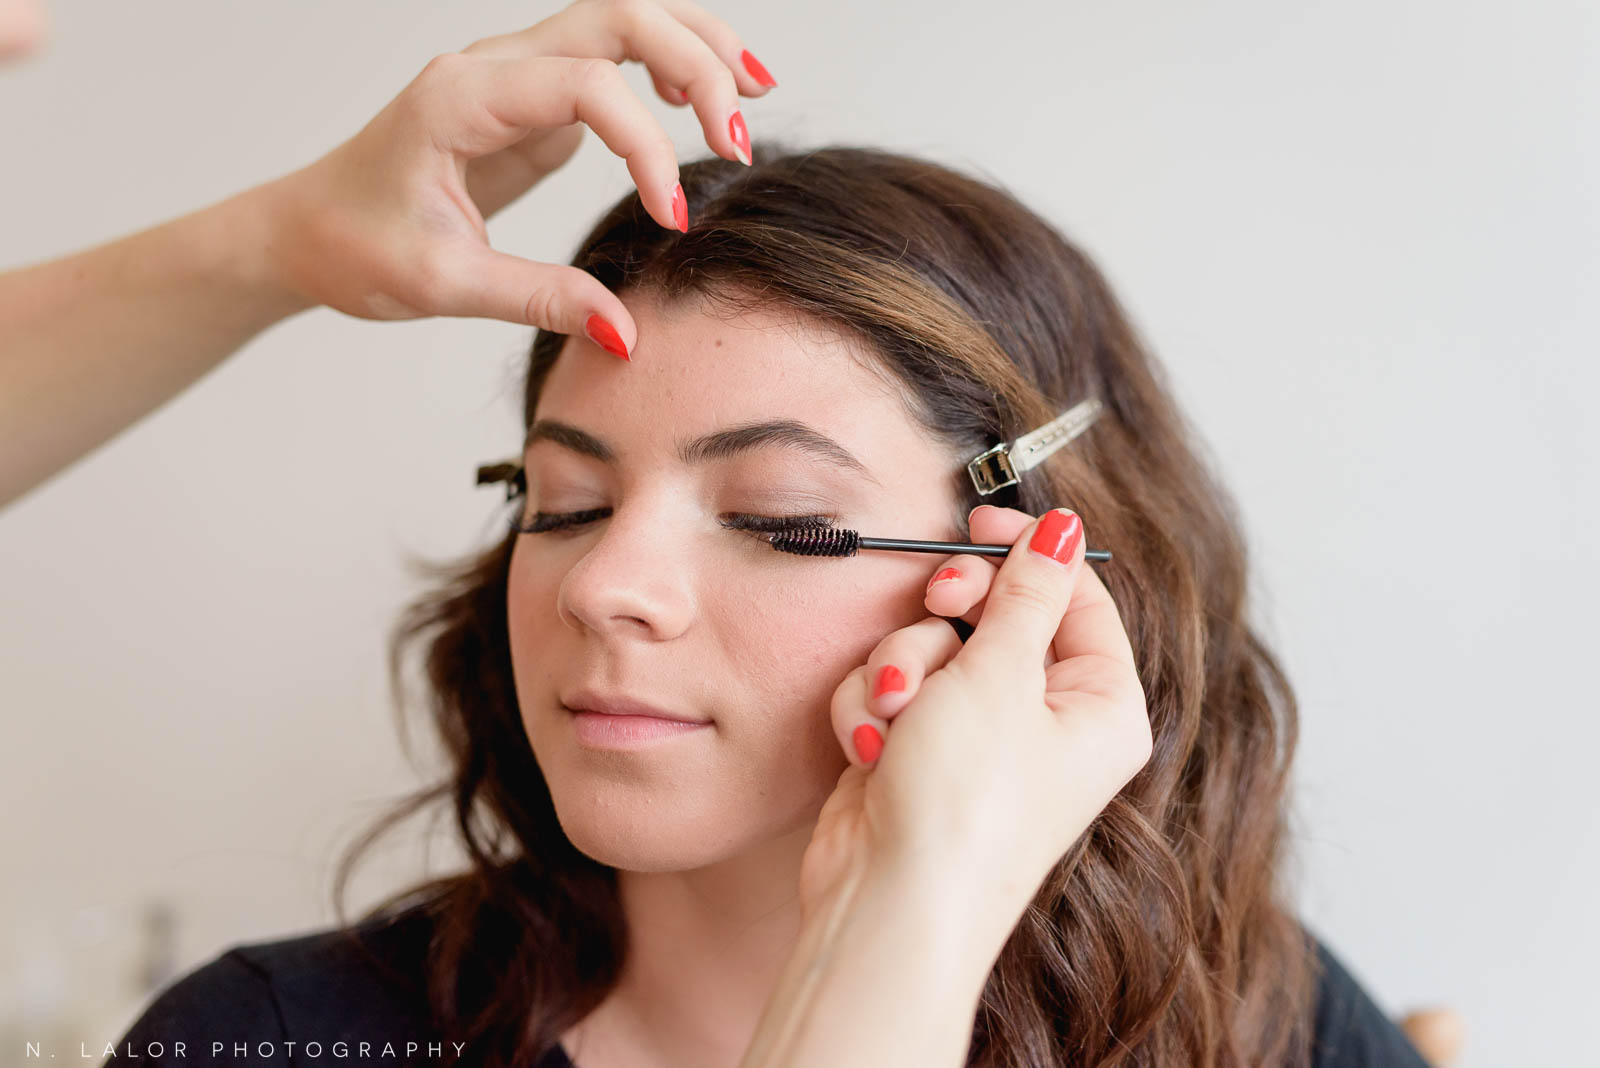 Applying mascara. Makeup tutorial for portrait session. Photo by N. Lalor Photography, makeup tips by Haus of Pretty of Westport CT.